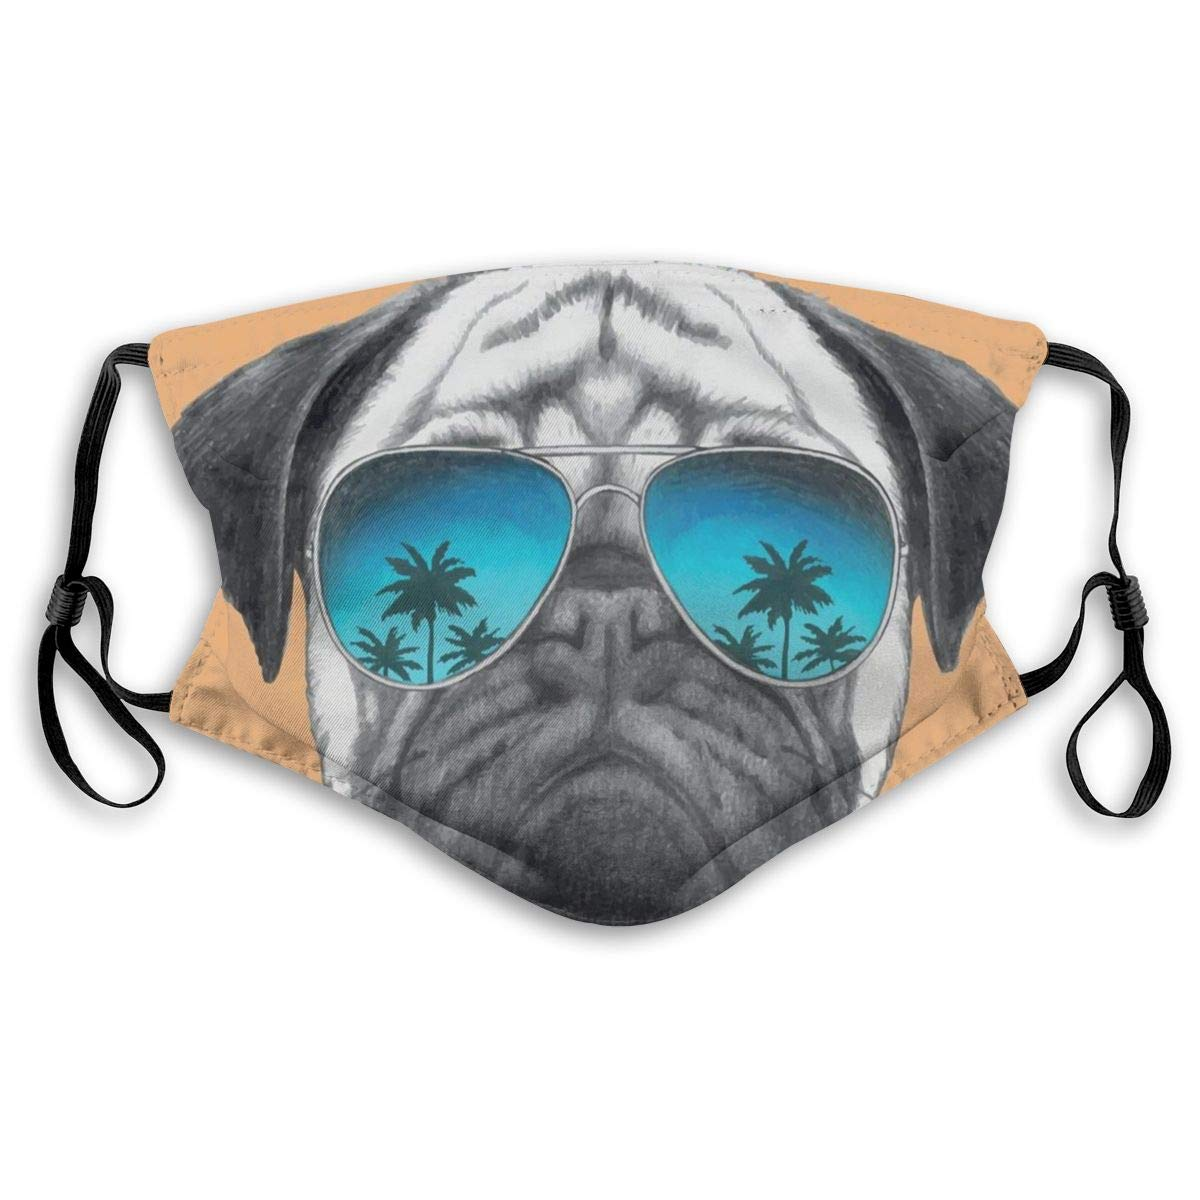 Unisex Half Face Mouth Mask Face Masks Anti-Dust Face Windproof Ski,Dog With Reflecting Aviators Palm Trees Tropical Environment